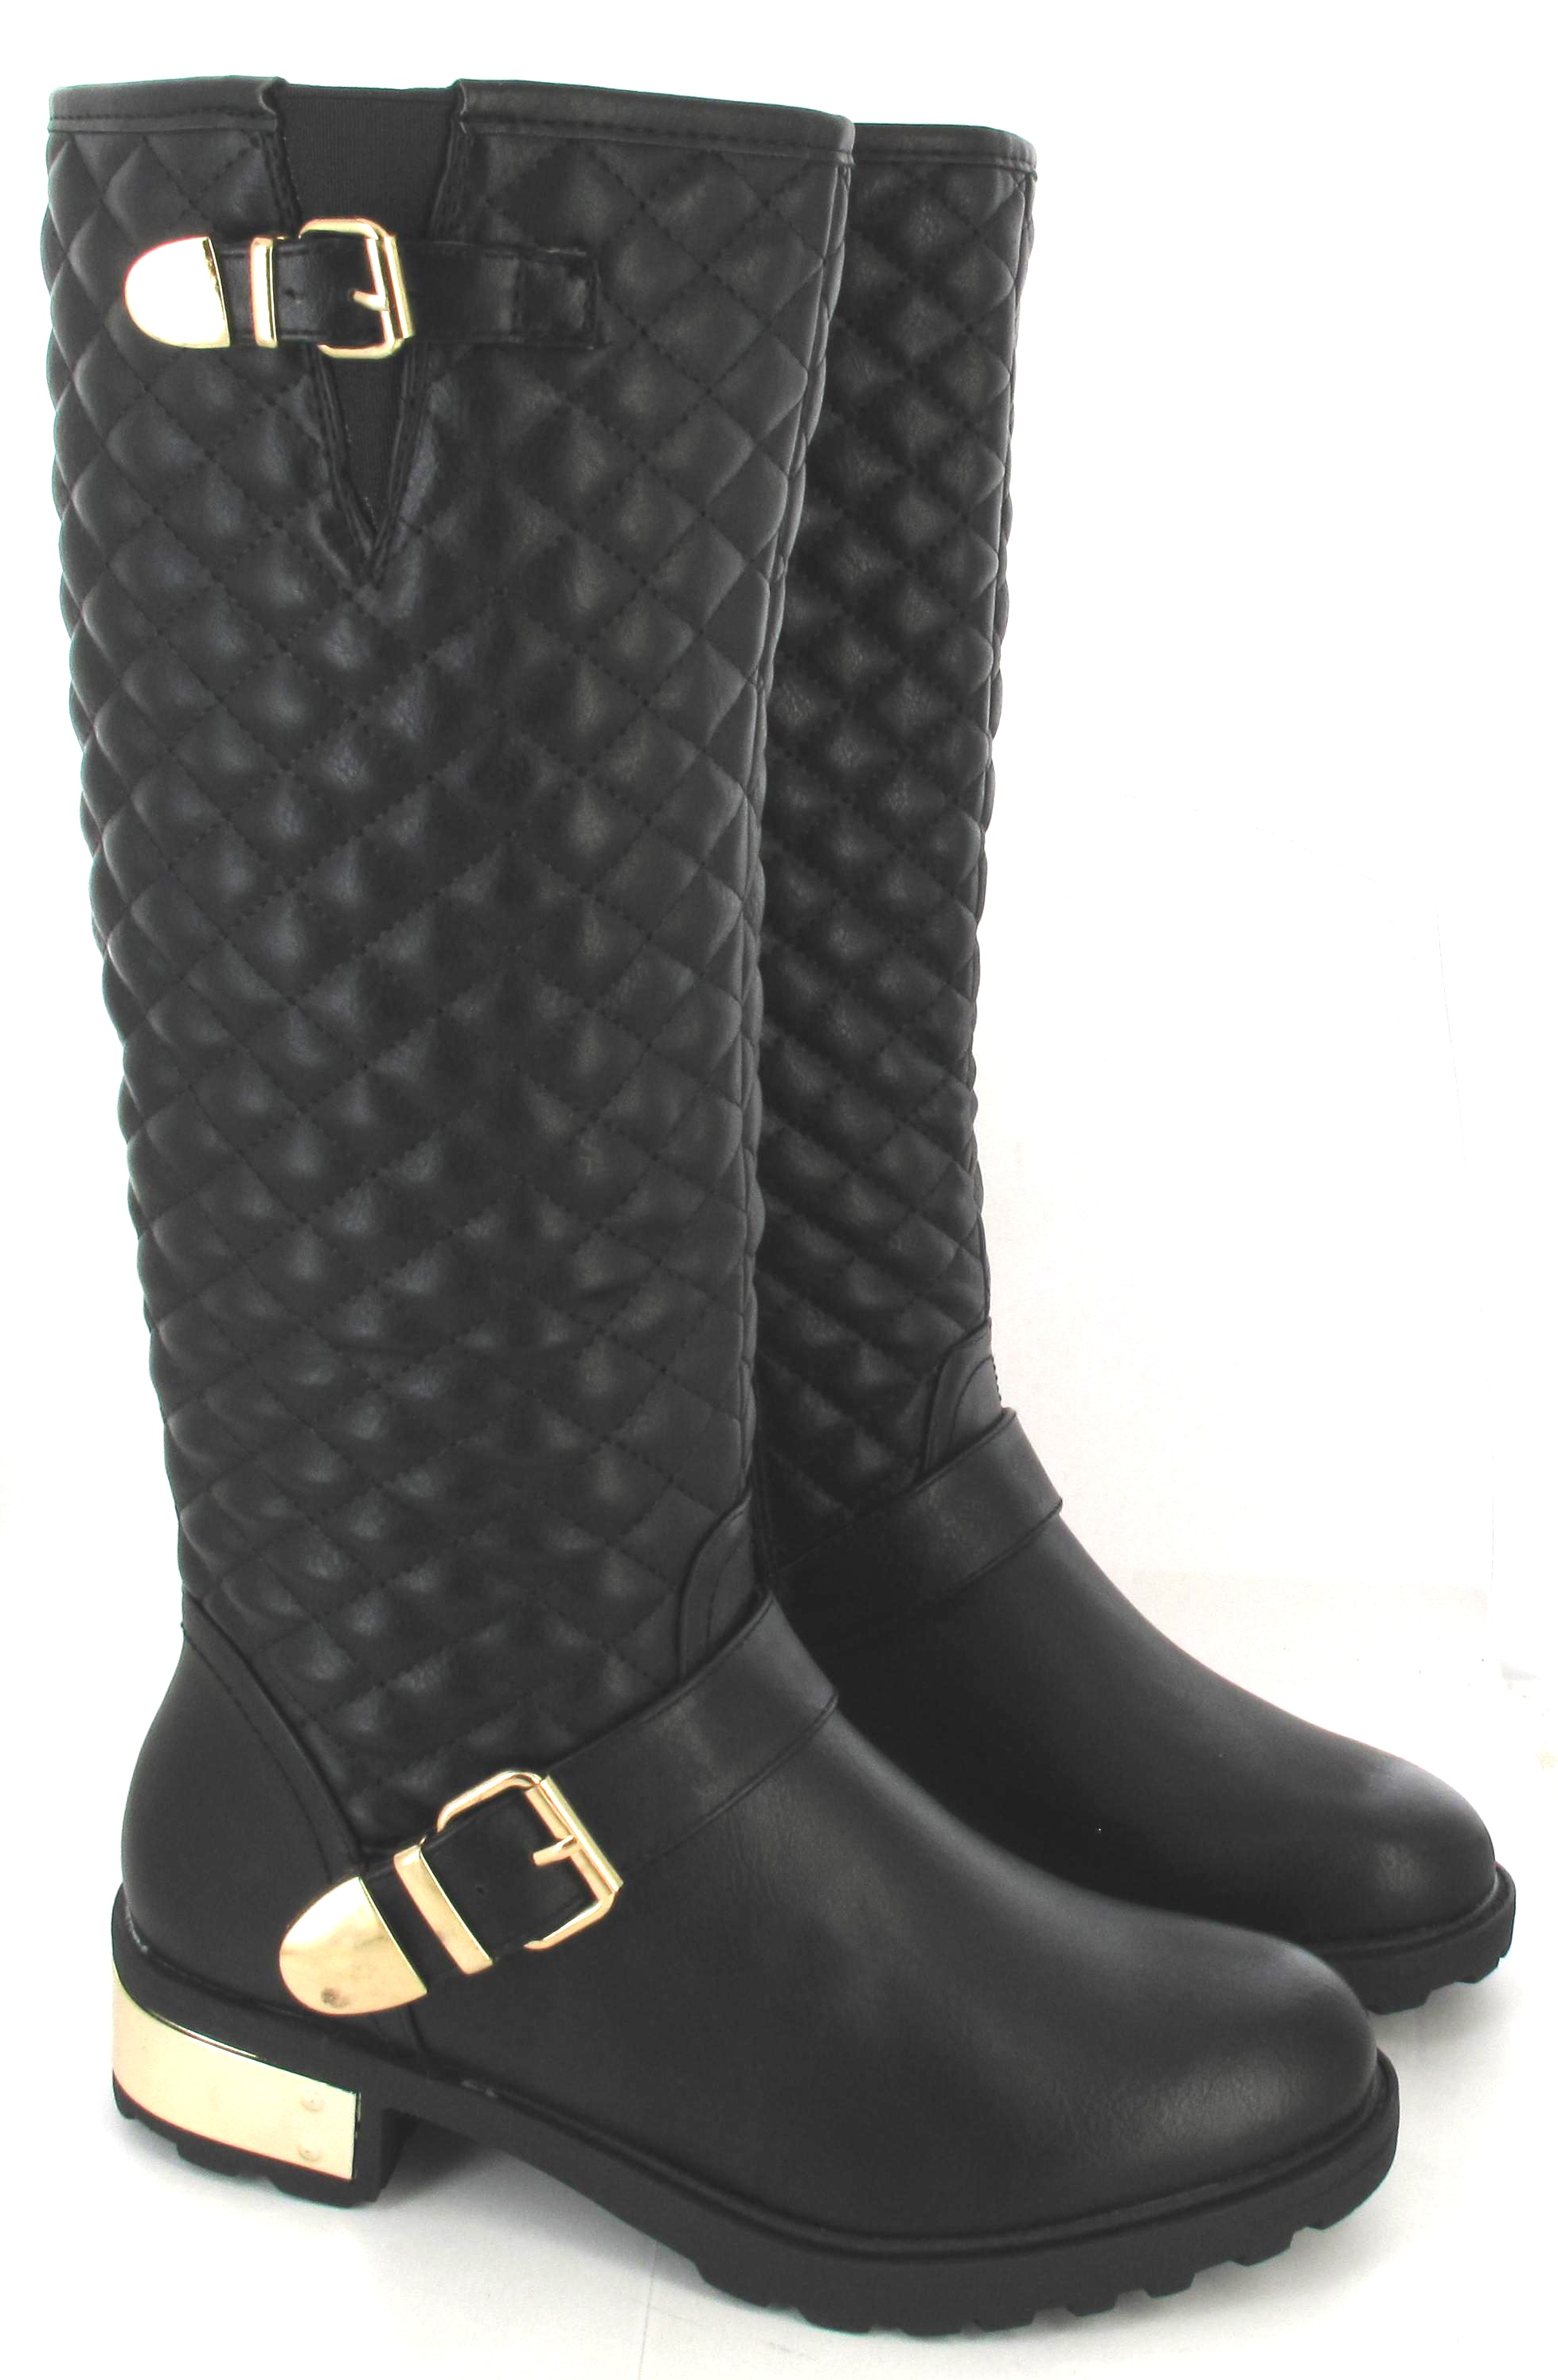 LADIES WOMENS BLACK PATENT FLAT RIDING CASUAL KNEE HIGH BOOTS SIZE ...